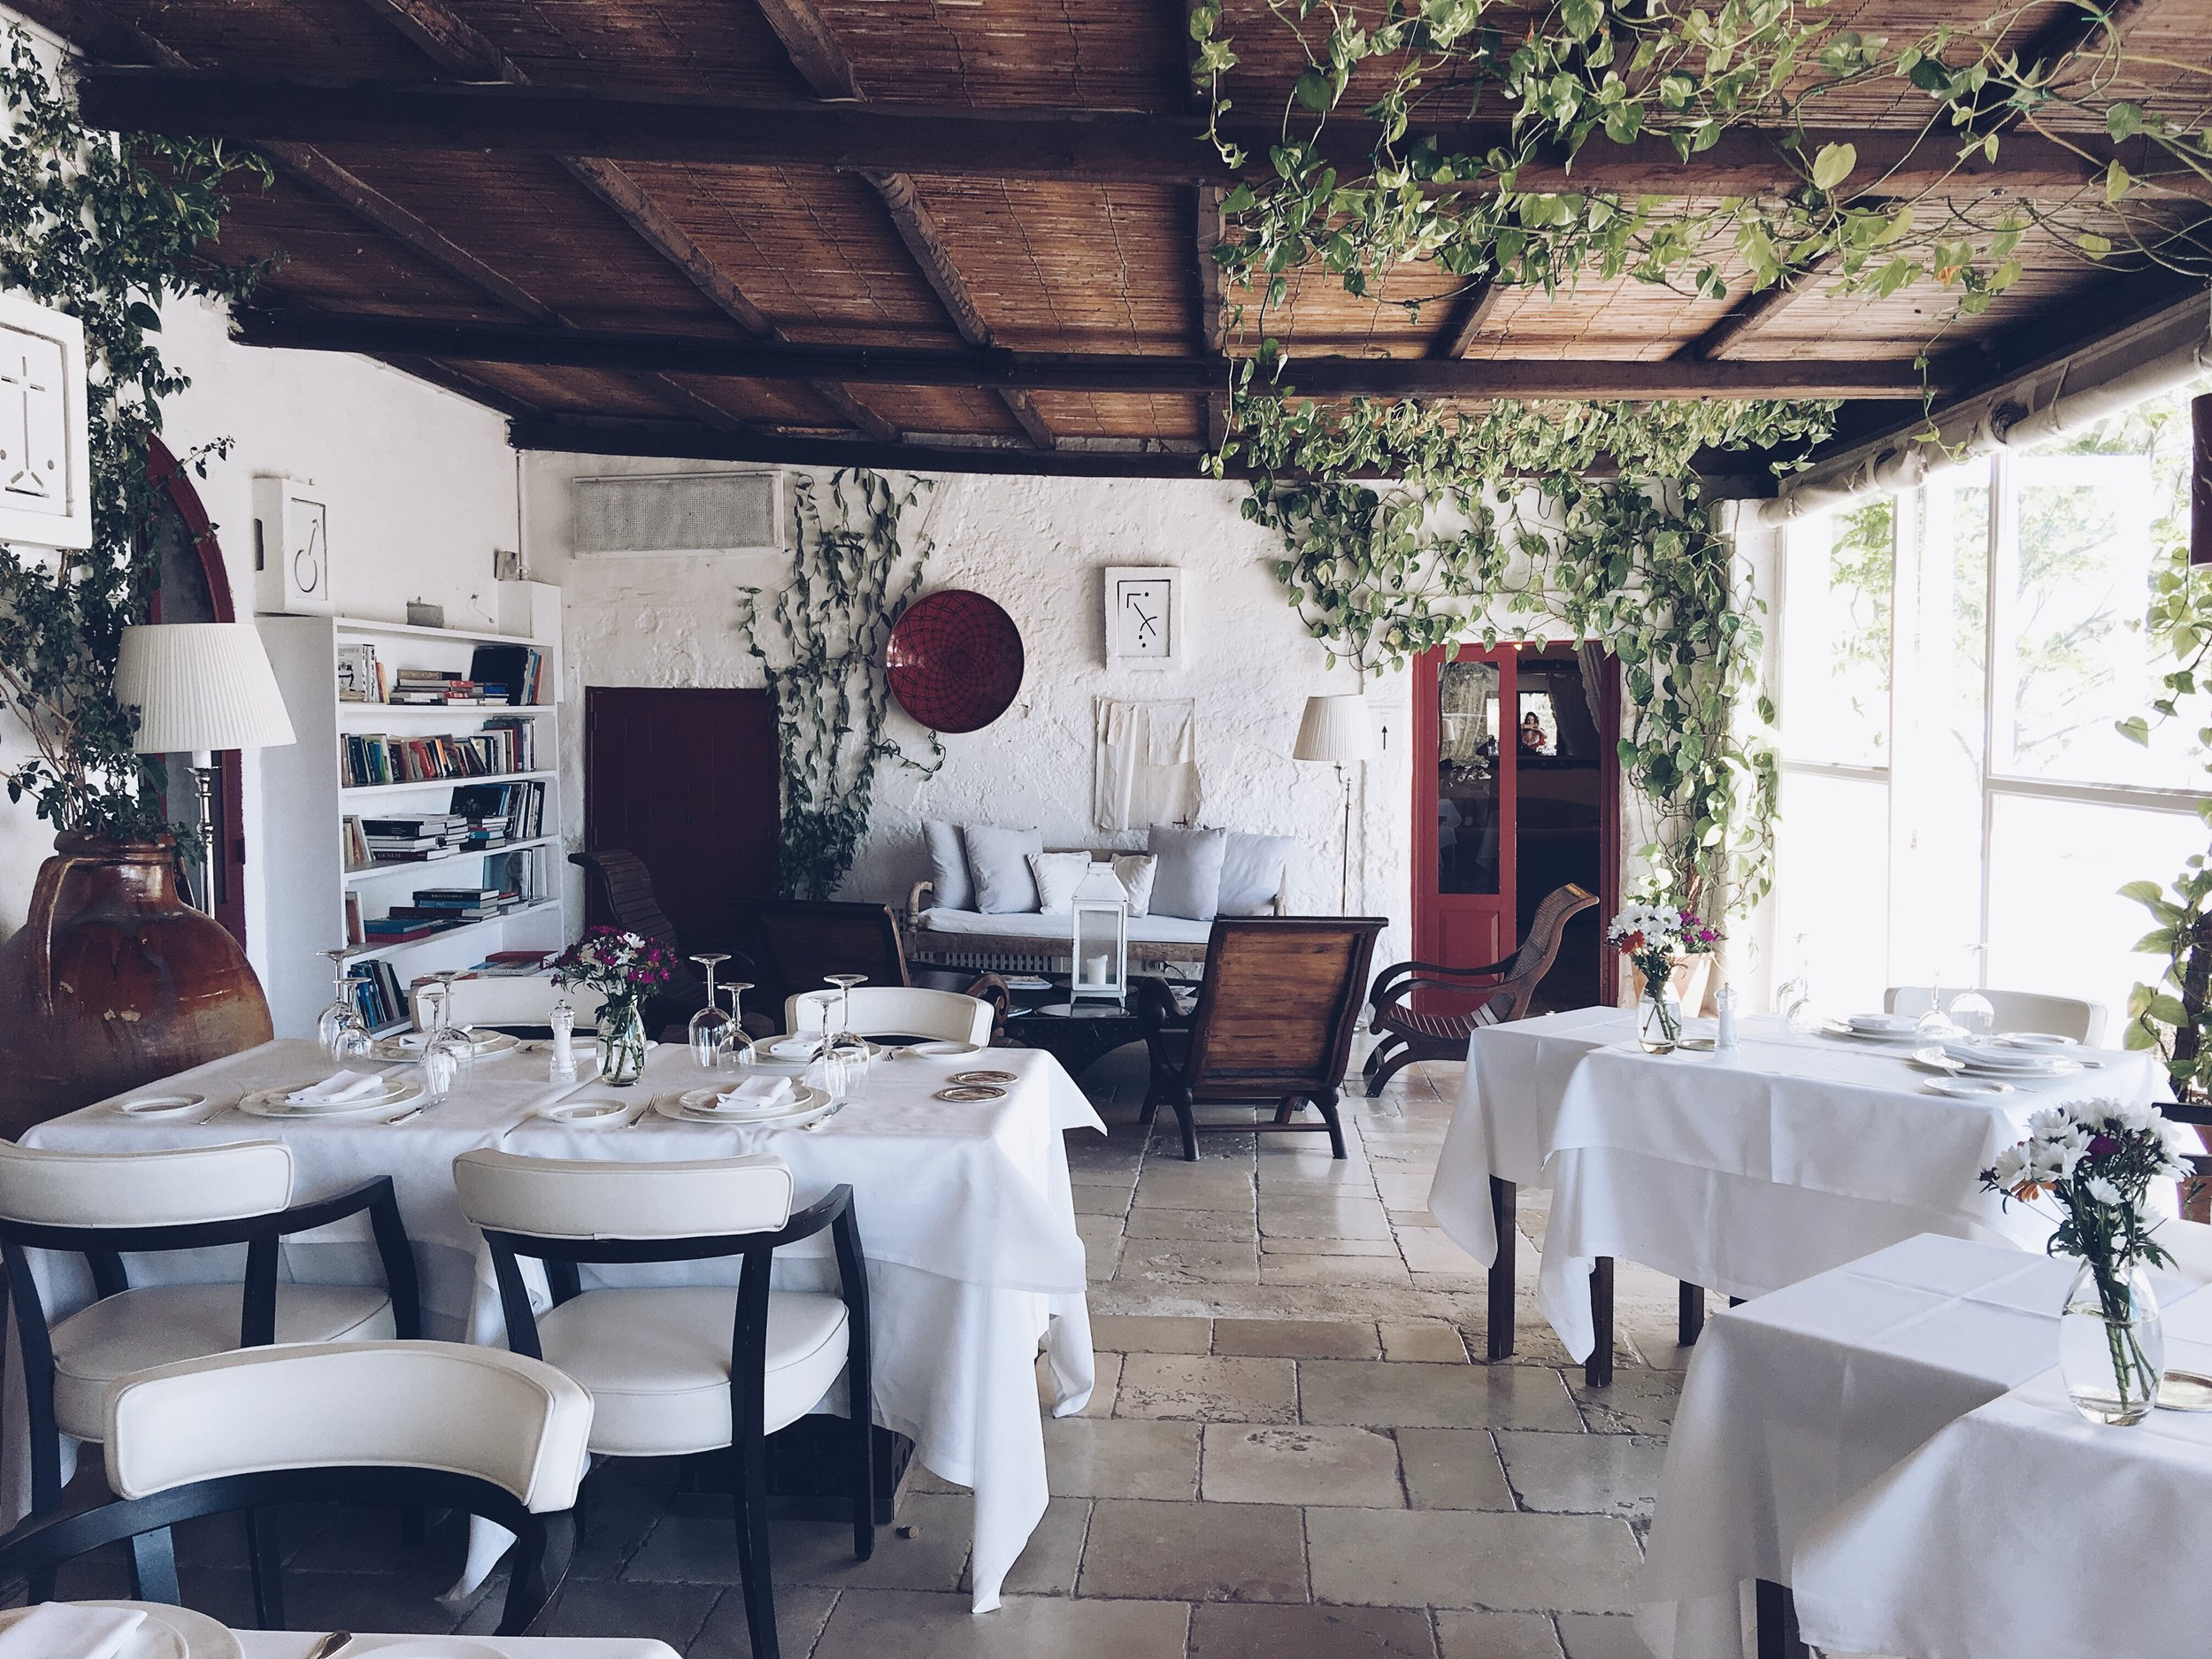 Lunch at  Masseria Torre Coccaro